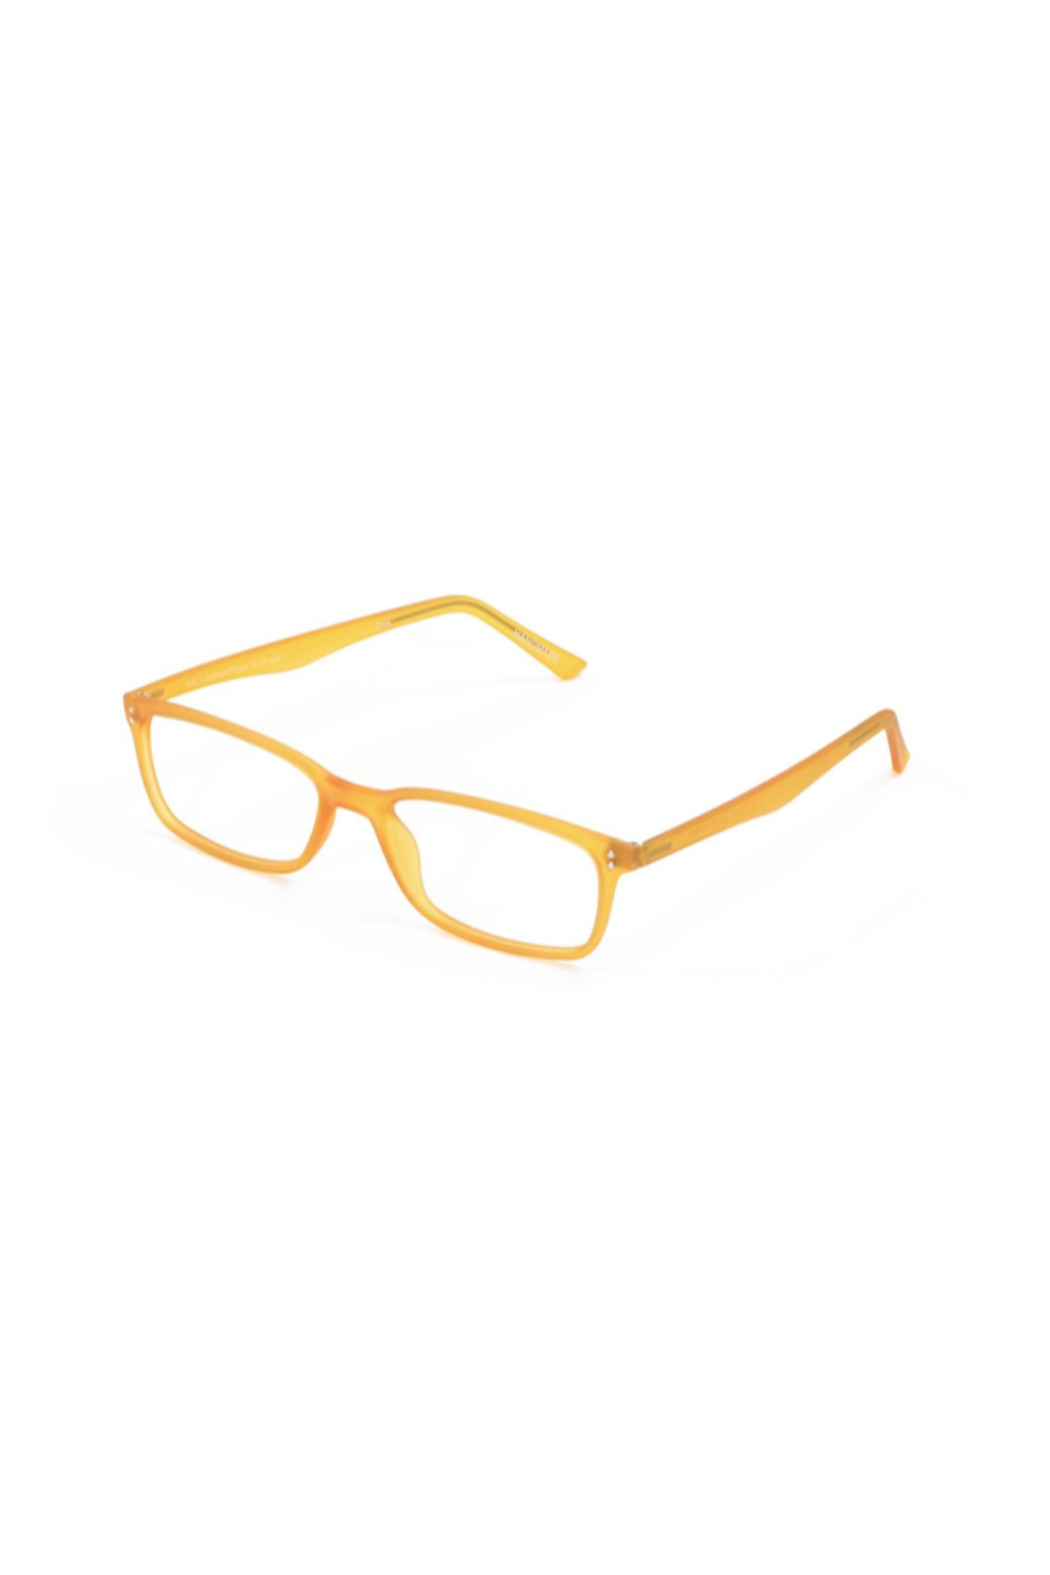 The Birds Nest MUSTARD MANHATTAN GELS +2.00 SCOJO READING GLASSES - Front Cropped Image